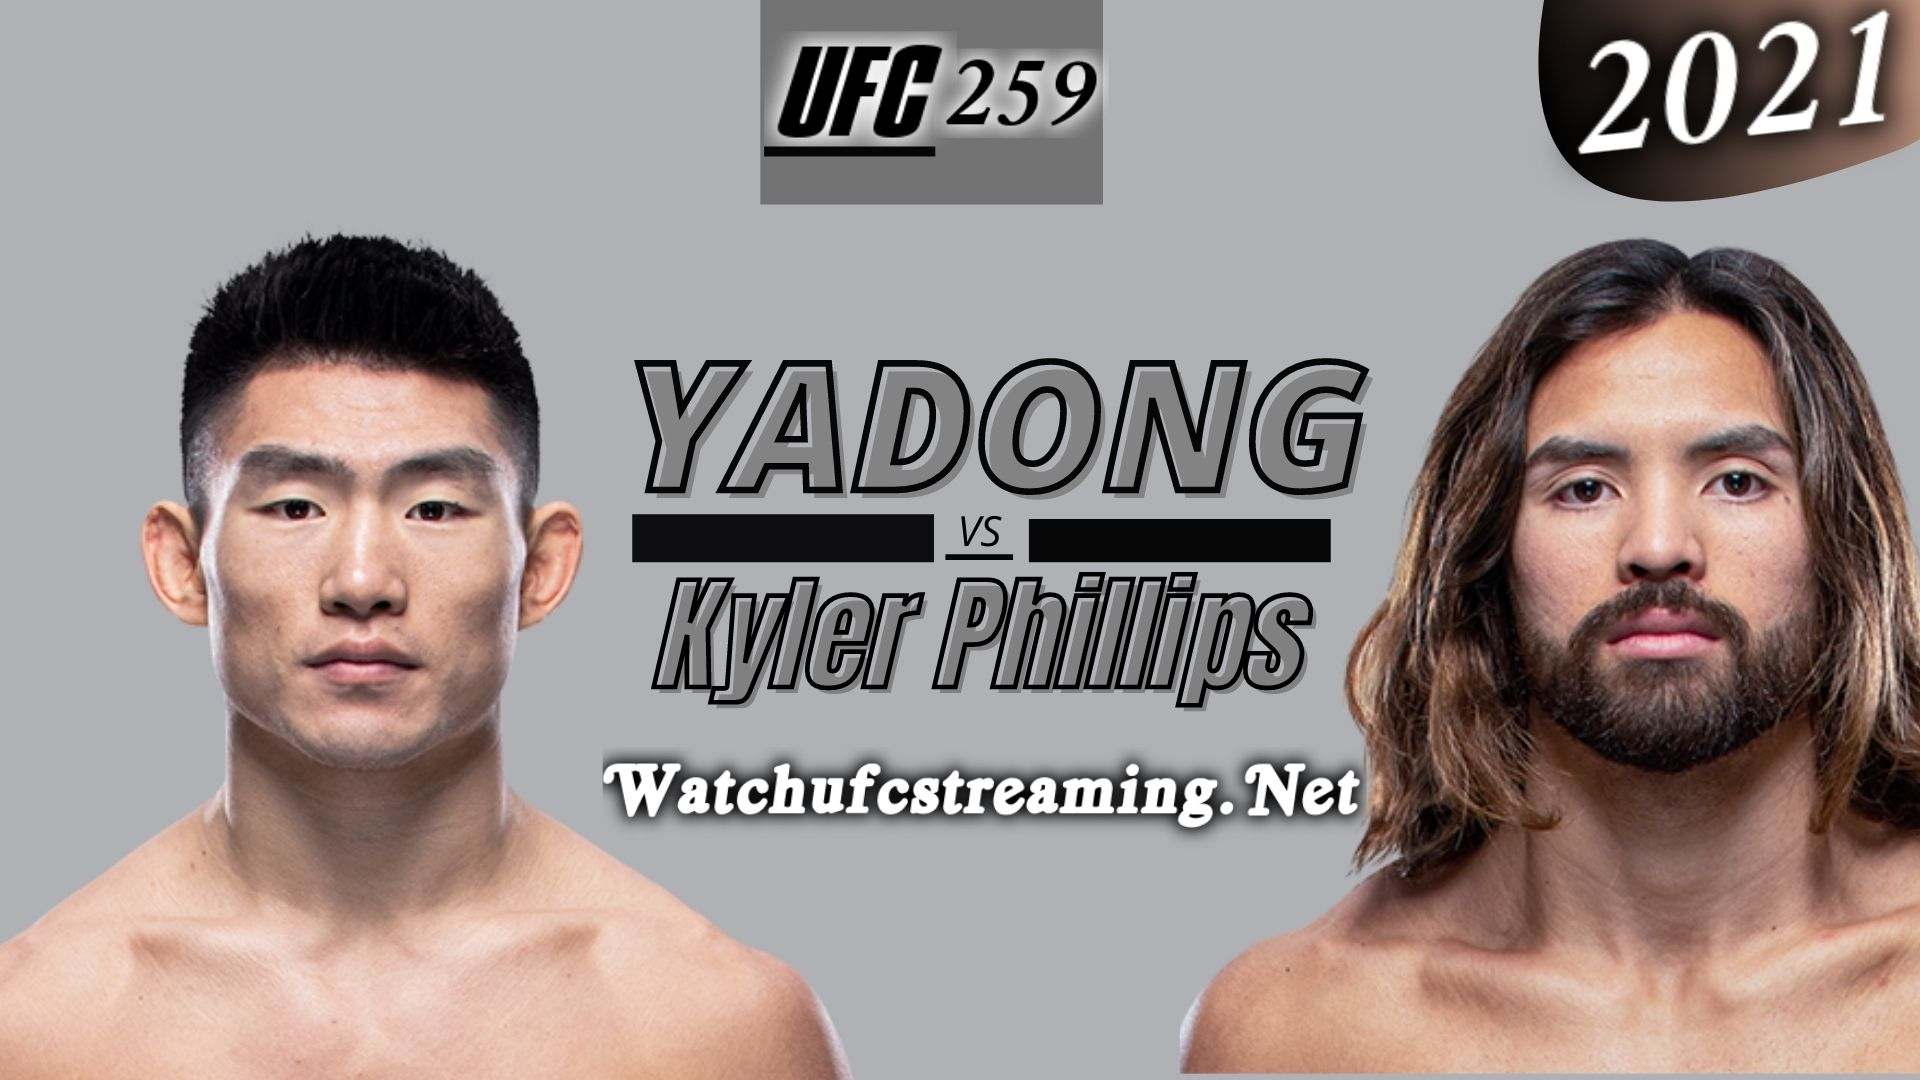 UFC 259: Song Yadong Vs Kyler Phillips Highlights 2021 | Bantamweight